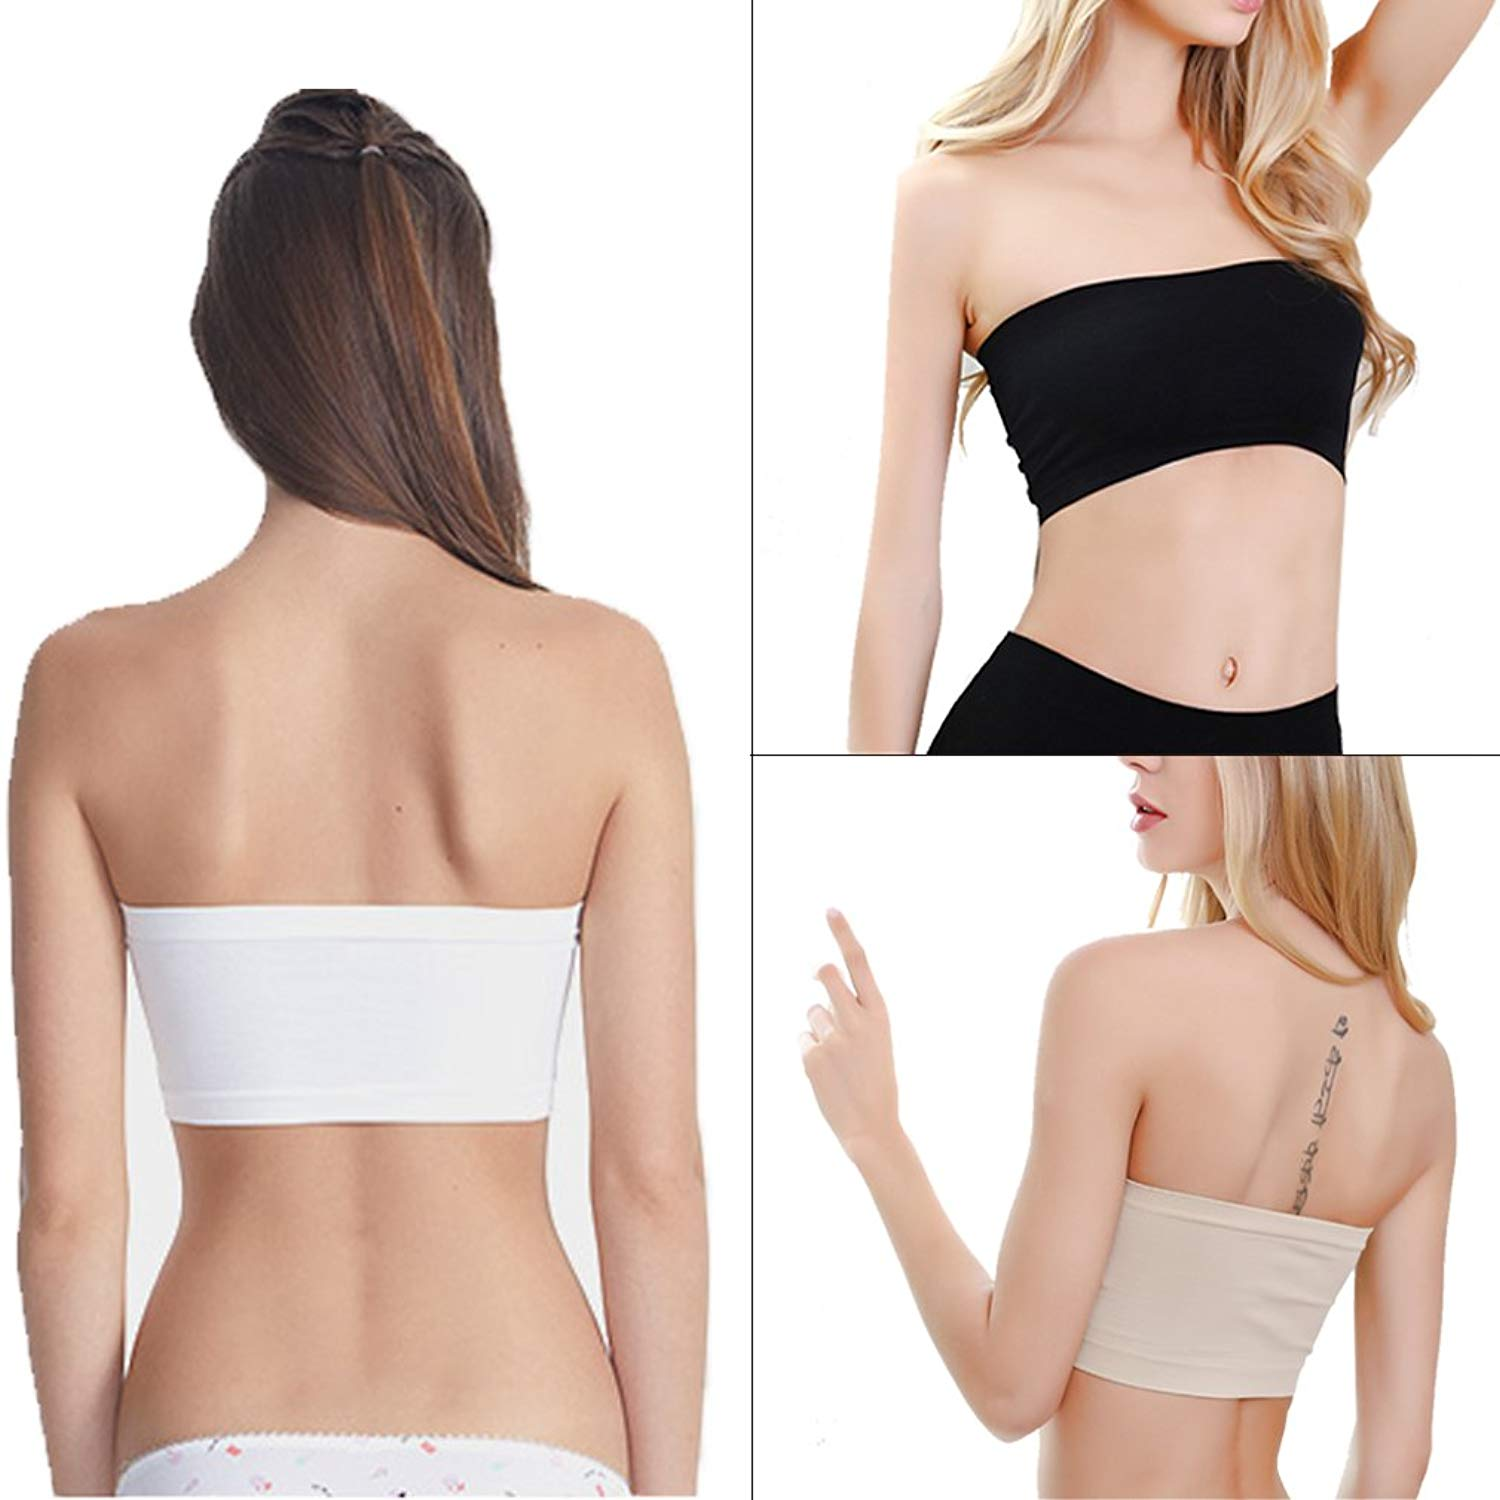 Plusfeel Strapless Bra, Women's Padded Basic Wire-Free Stretch Seamless Bandeau Tube Top Bra, 3 Pack